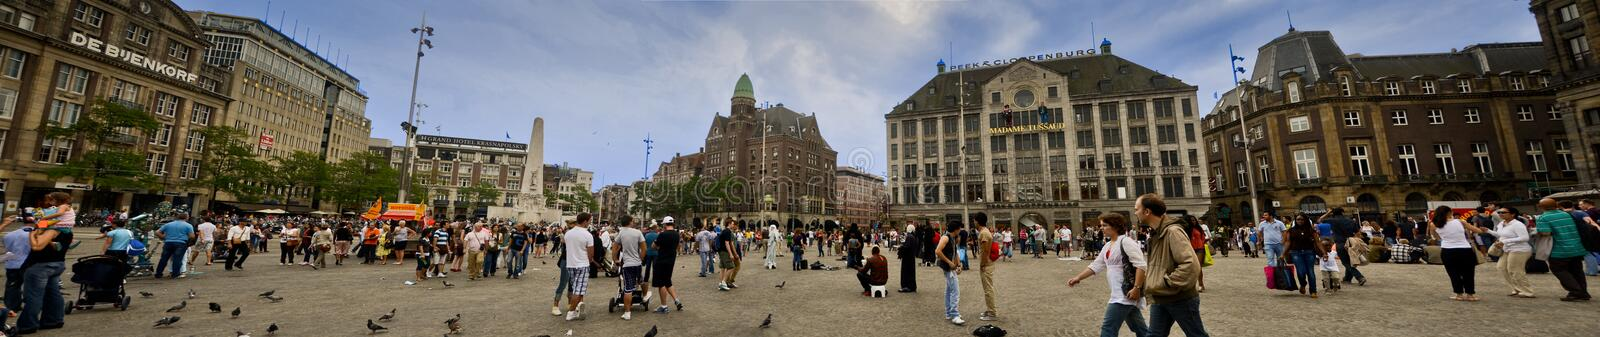 Dam Square in Amsterdam royalty free stock image